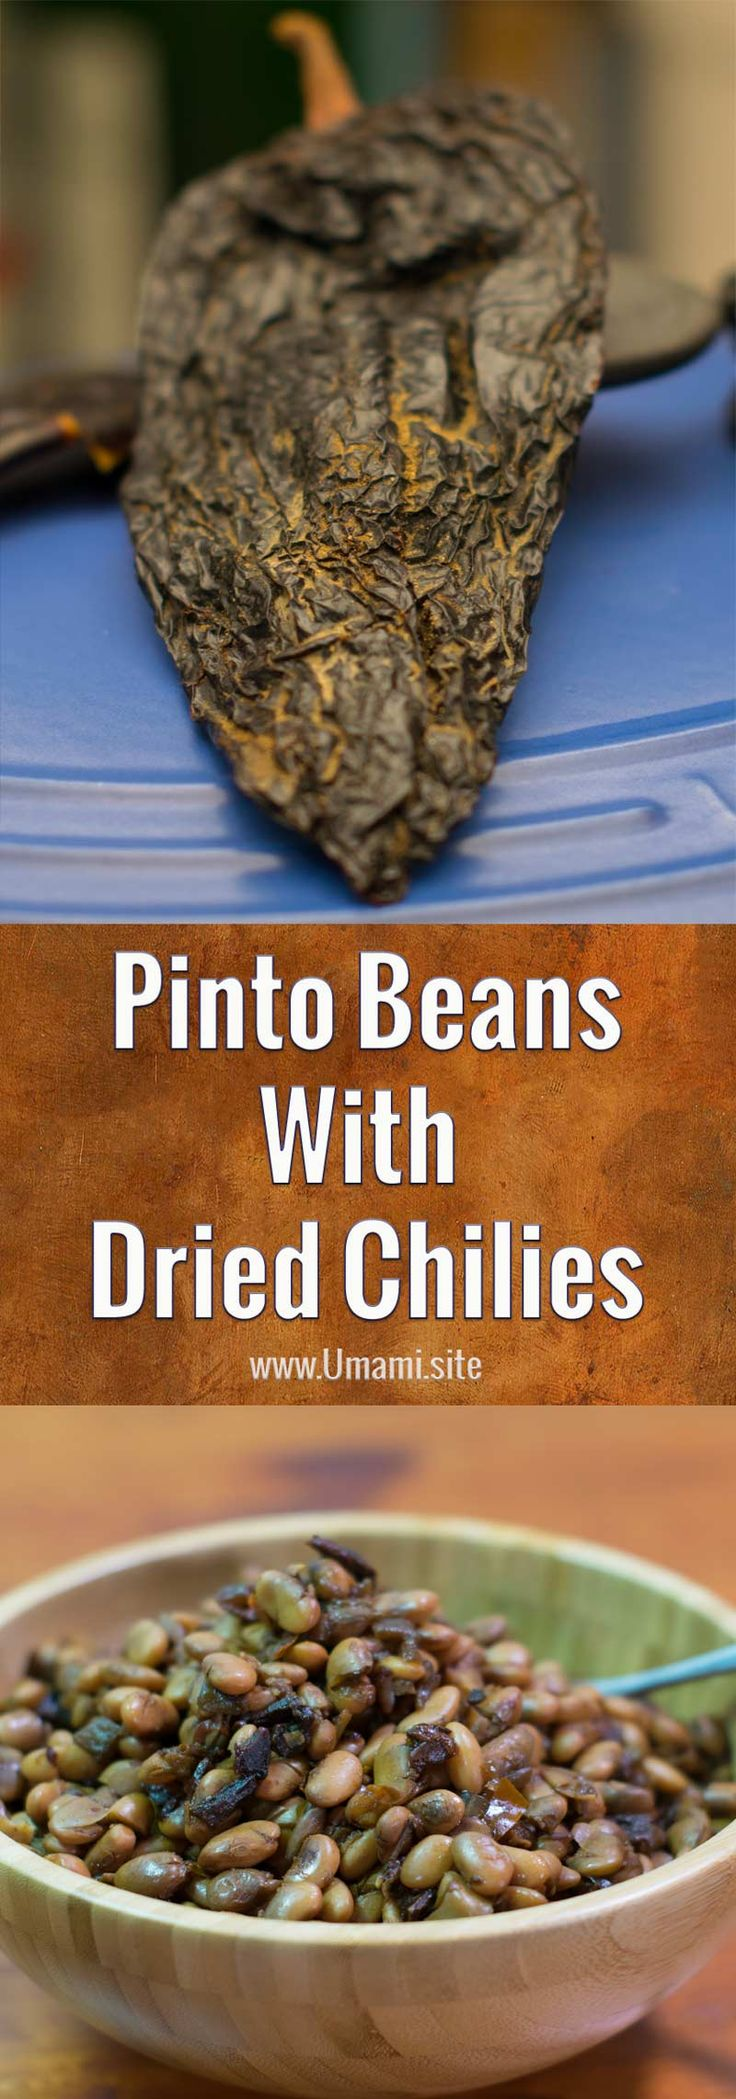 Pinto beans cooked with dried chilies have a deep, rich southwestern flavor. This pinto bean recipe uses ancho and pasilla chilies to create a healthy and delicious dish.